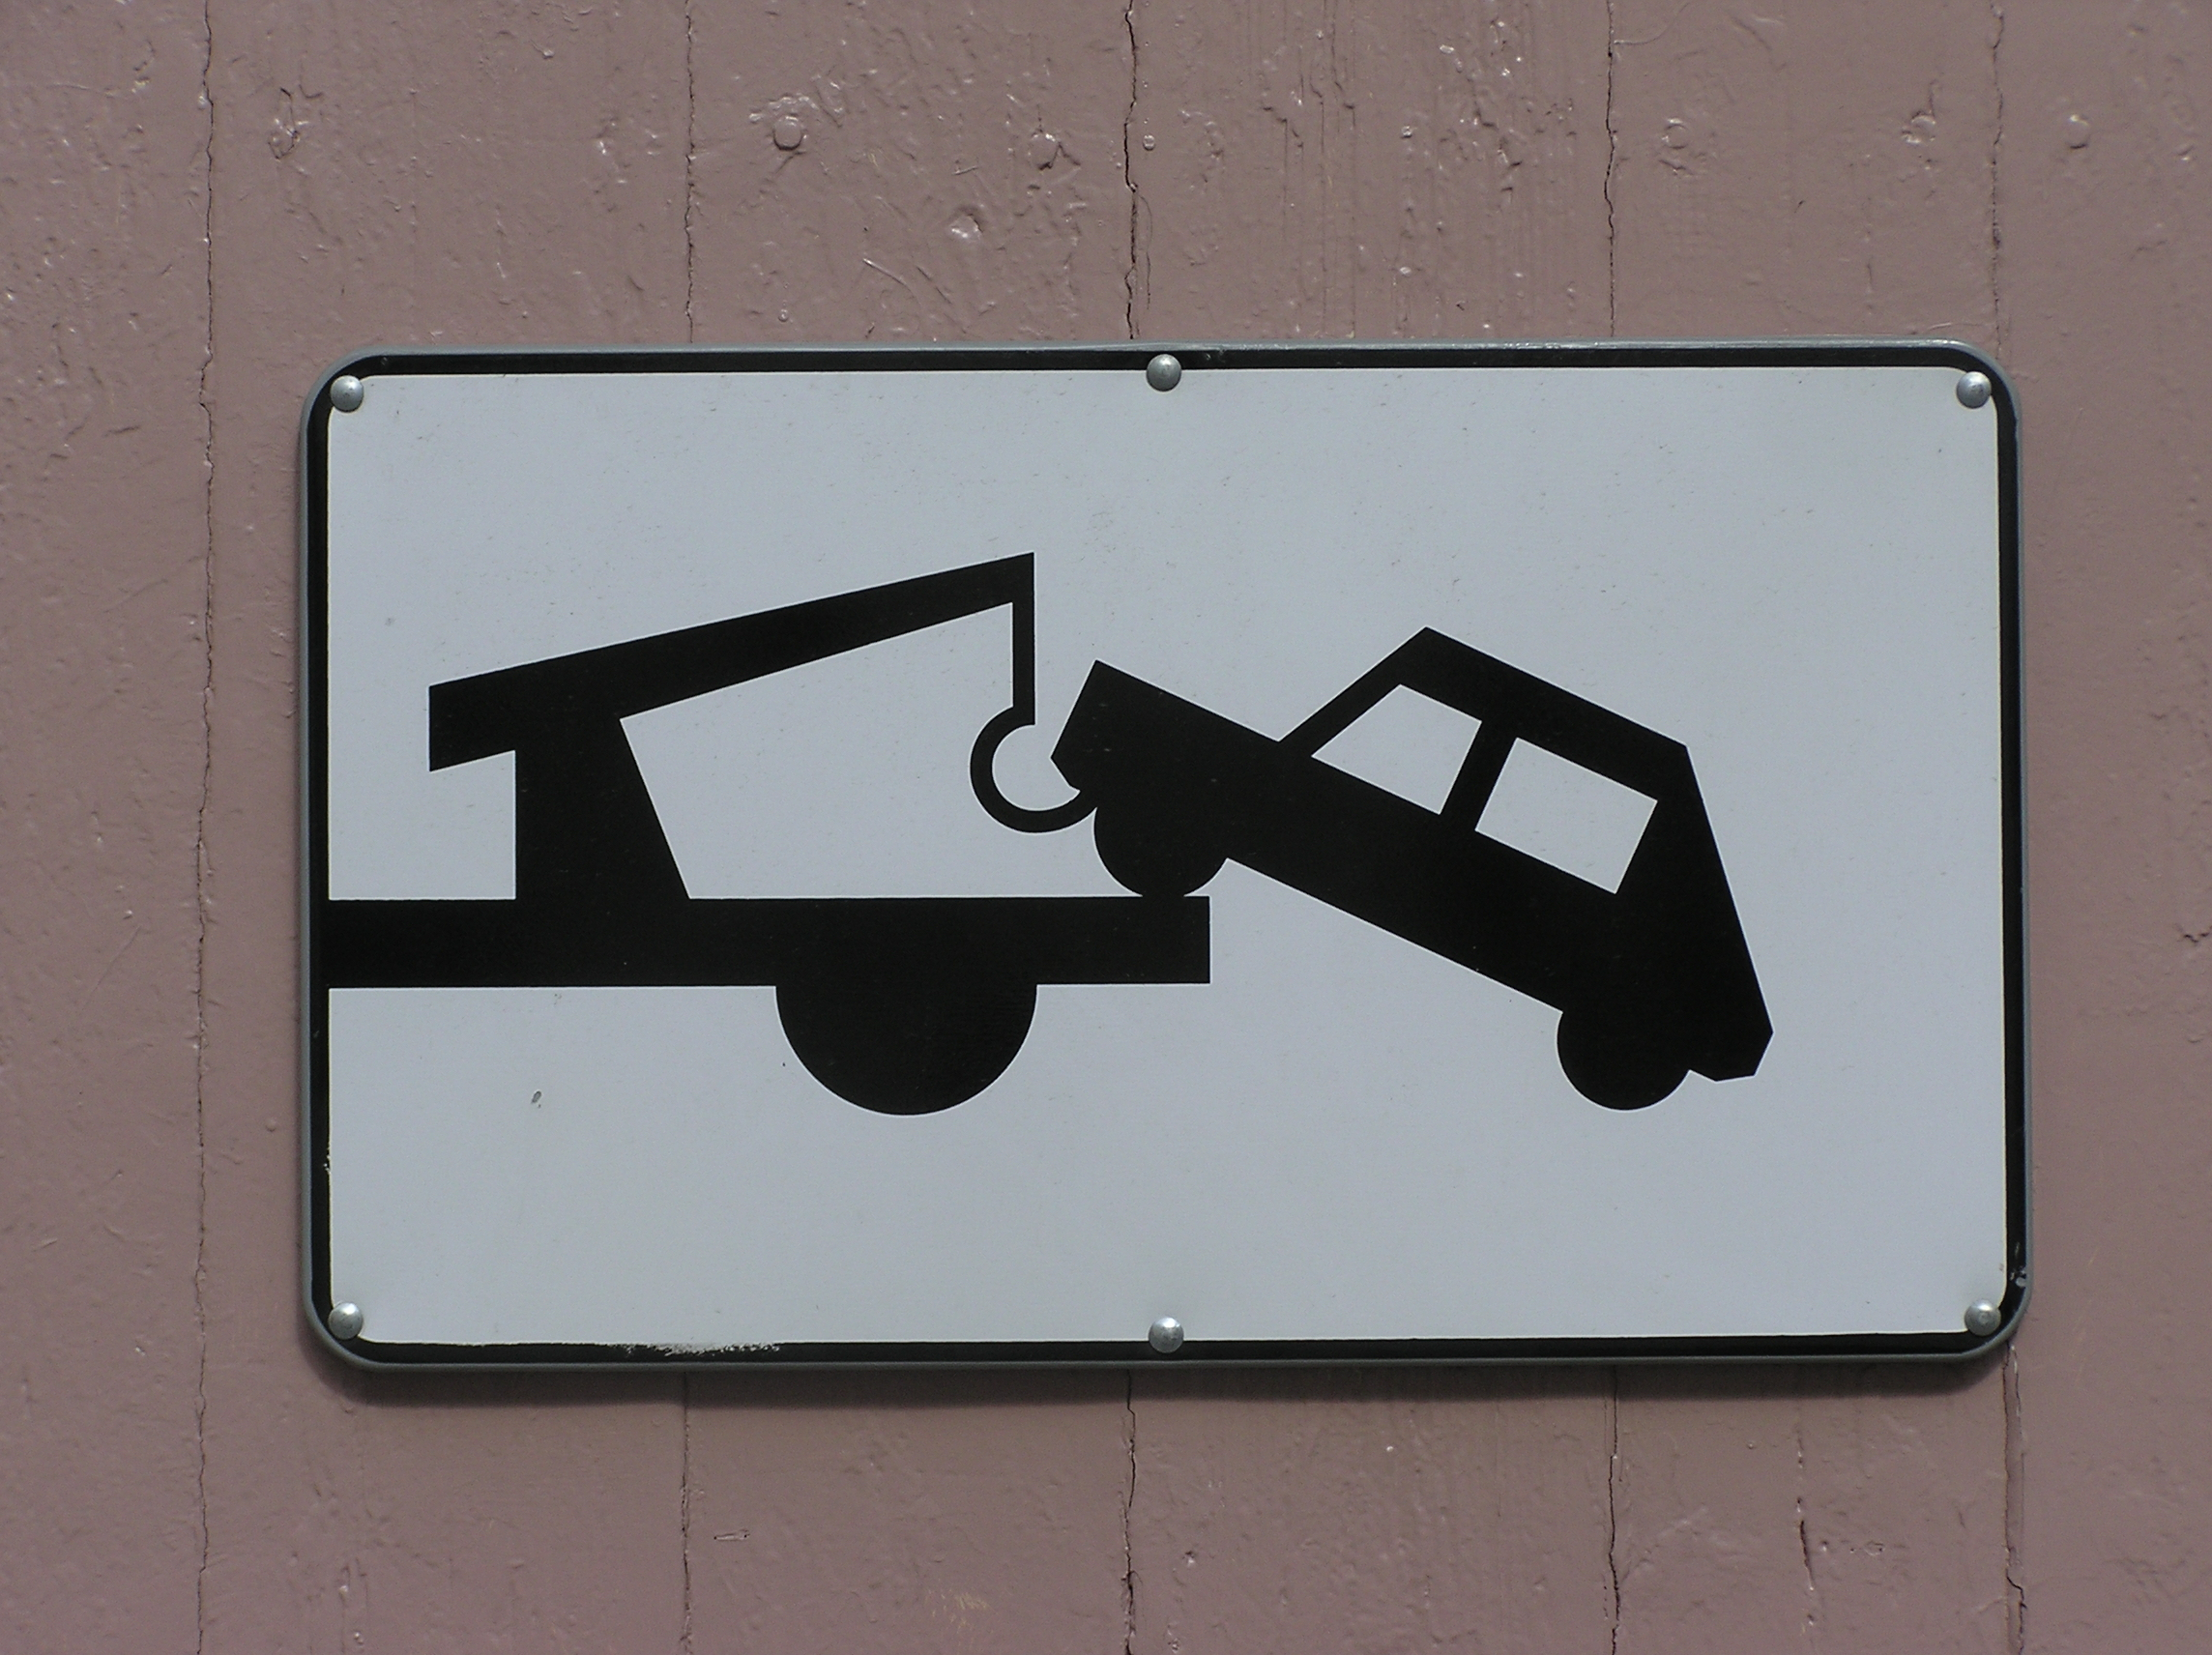 Houston City Council Terminates Tow Truck Contract After